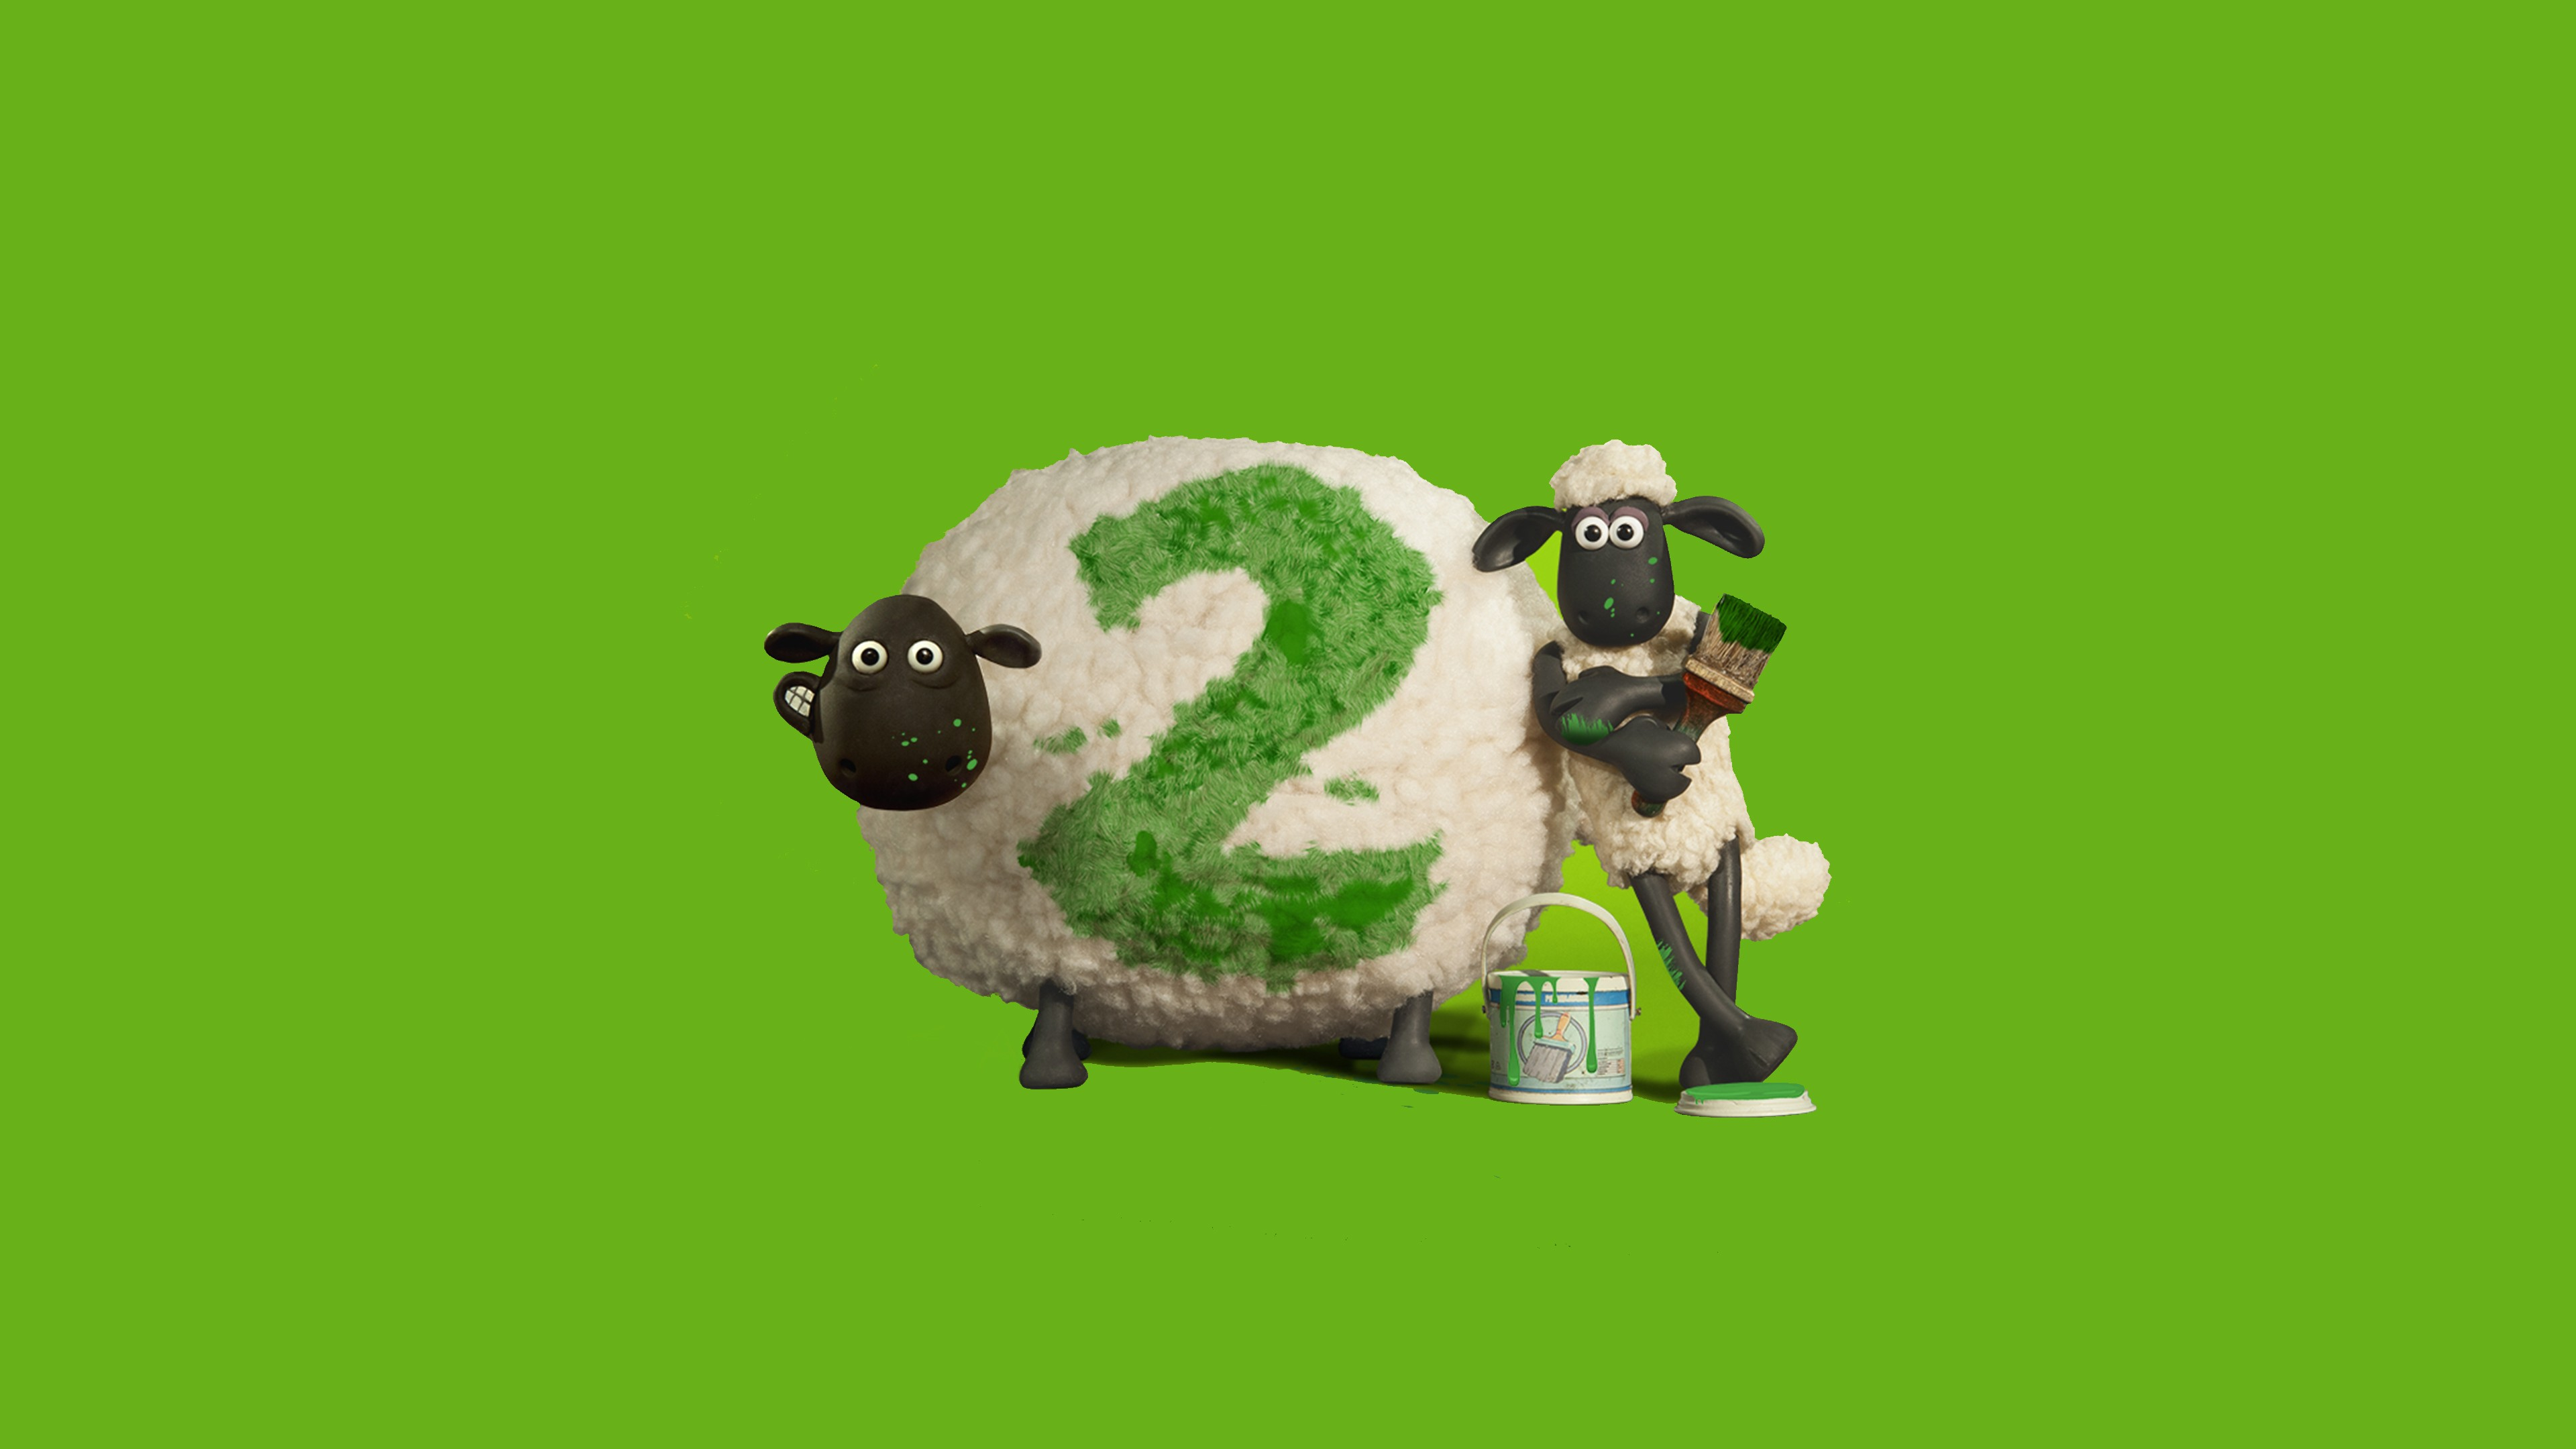 Wallpapers For Girls Spark Wallpaper Shaun The Sheep Best Animation Movies Movies